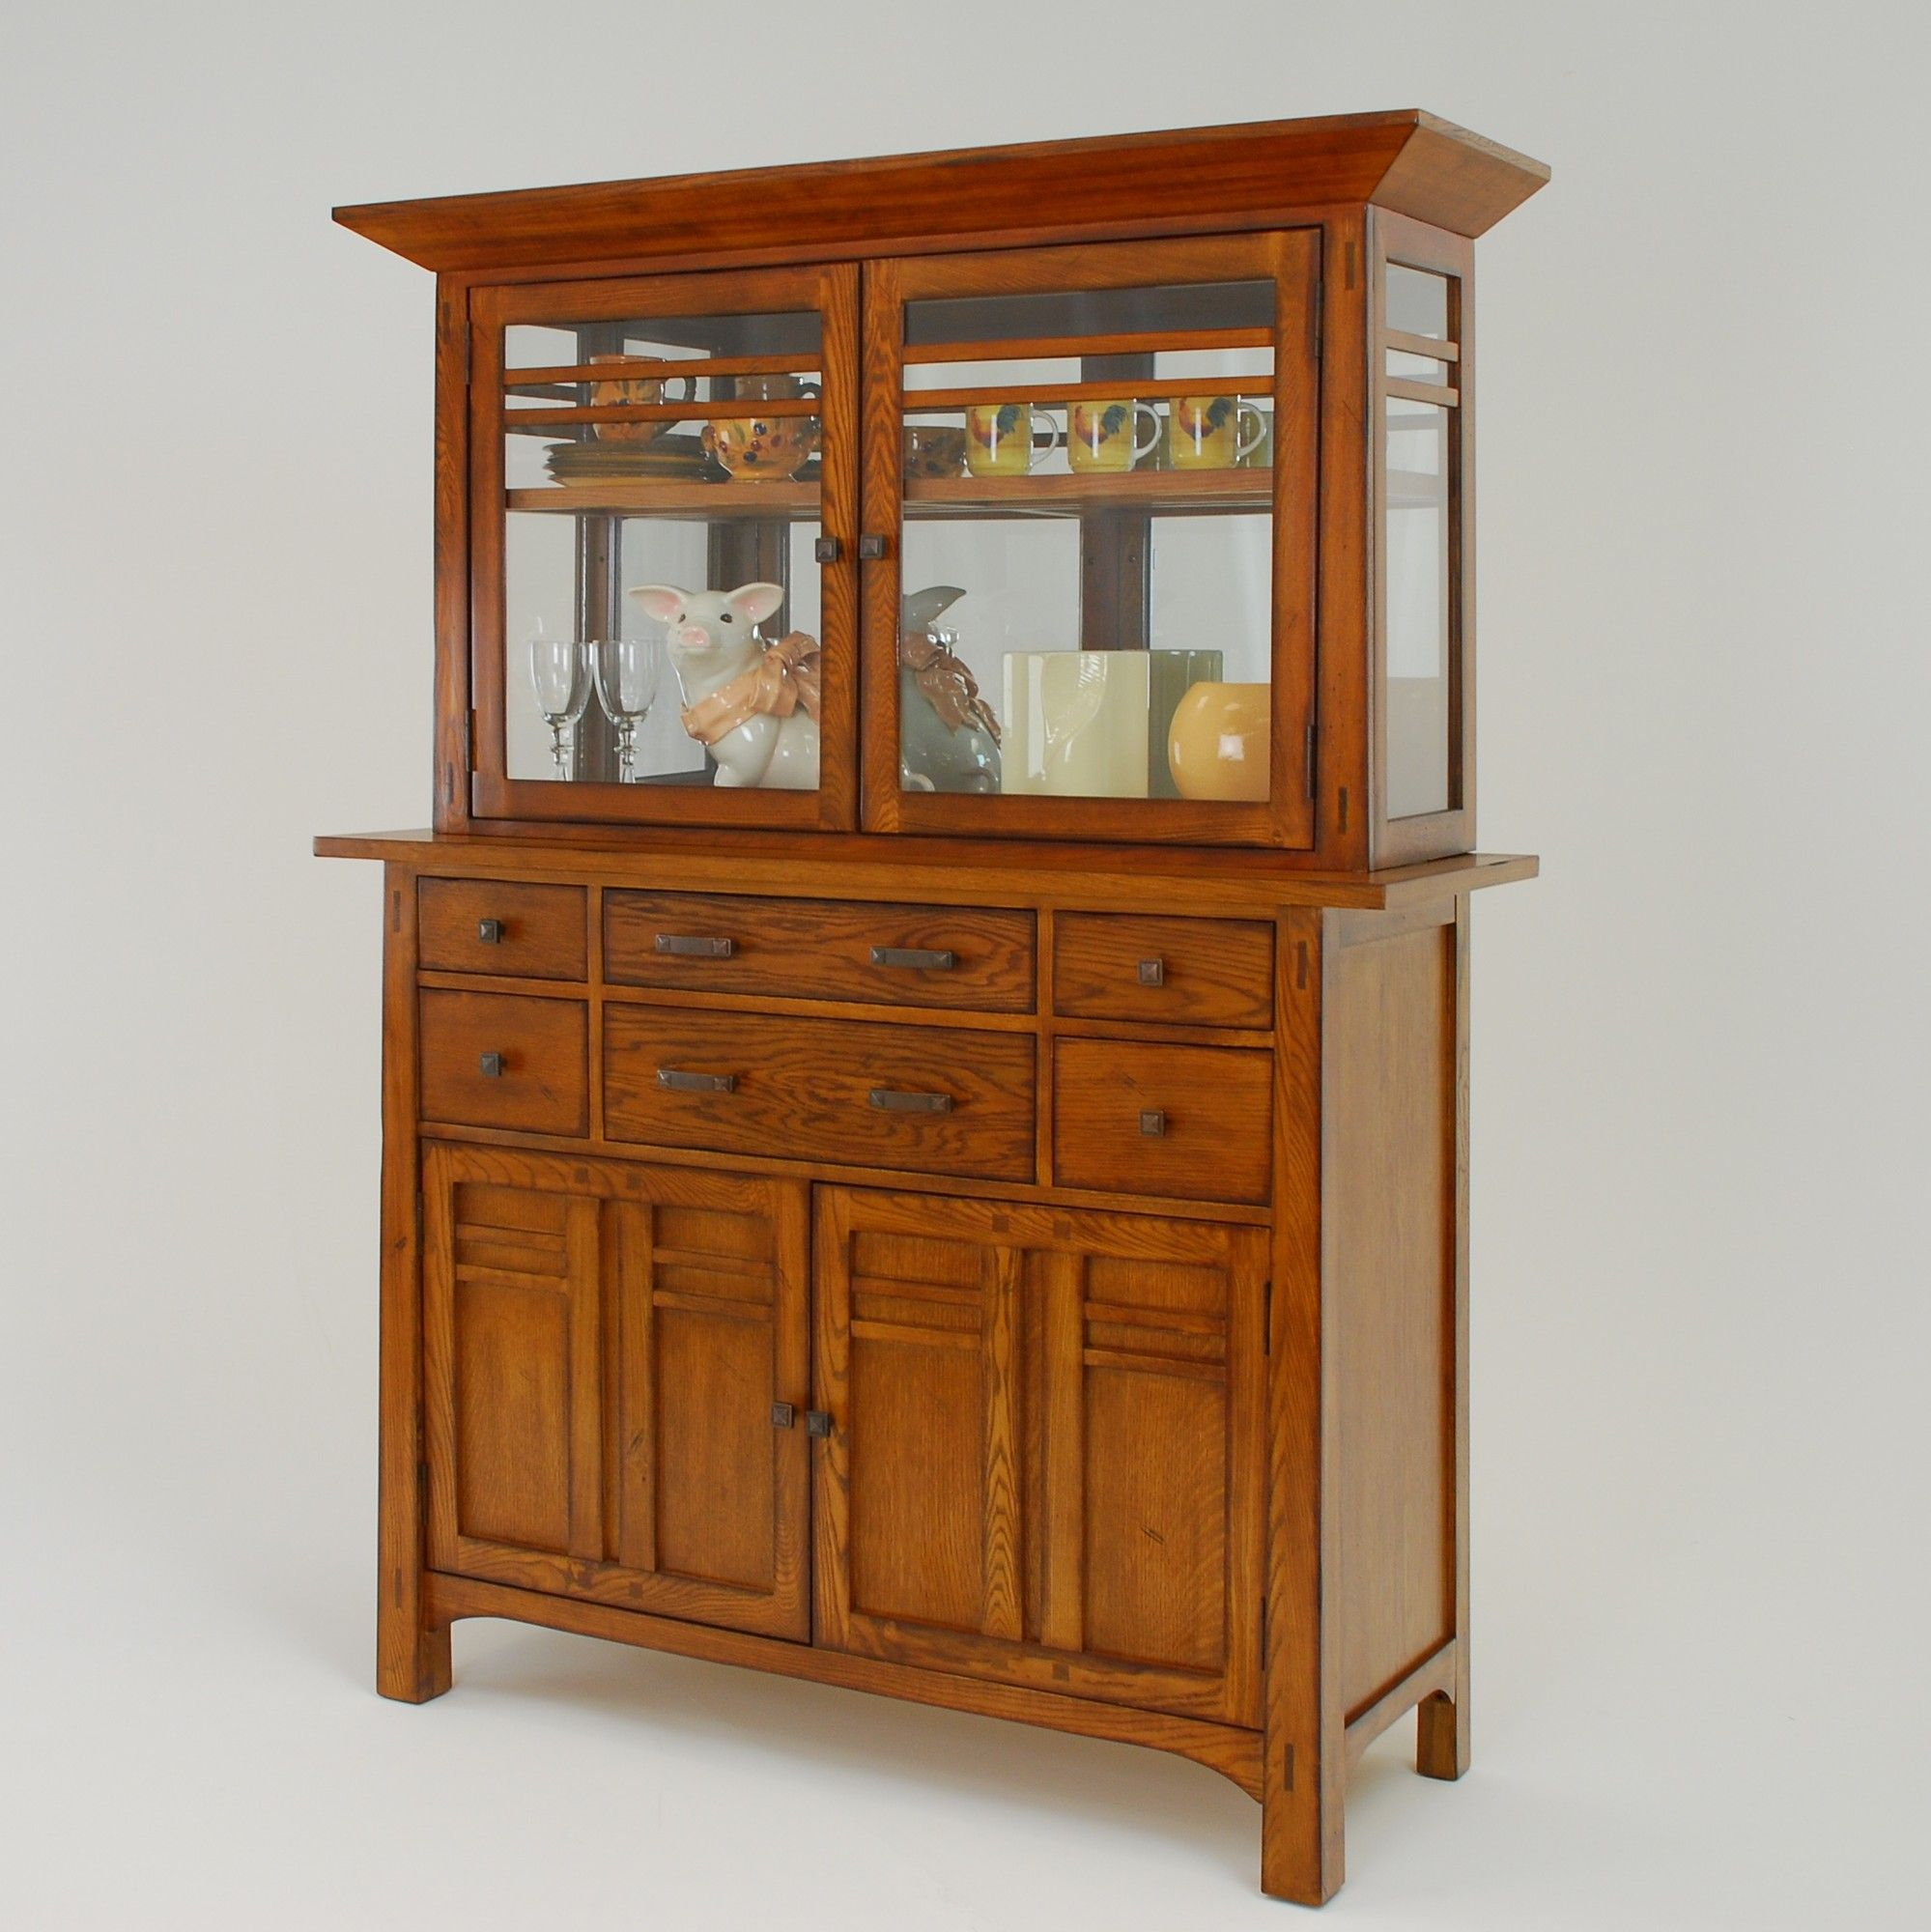 Gs Furniture Arts And Crafts Bungalow China Cabinet 1 290 97 China Cabinet Arts And Crafts Furniture Cabinet